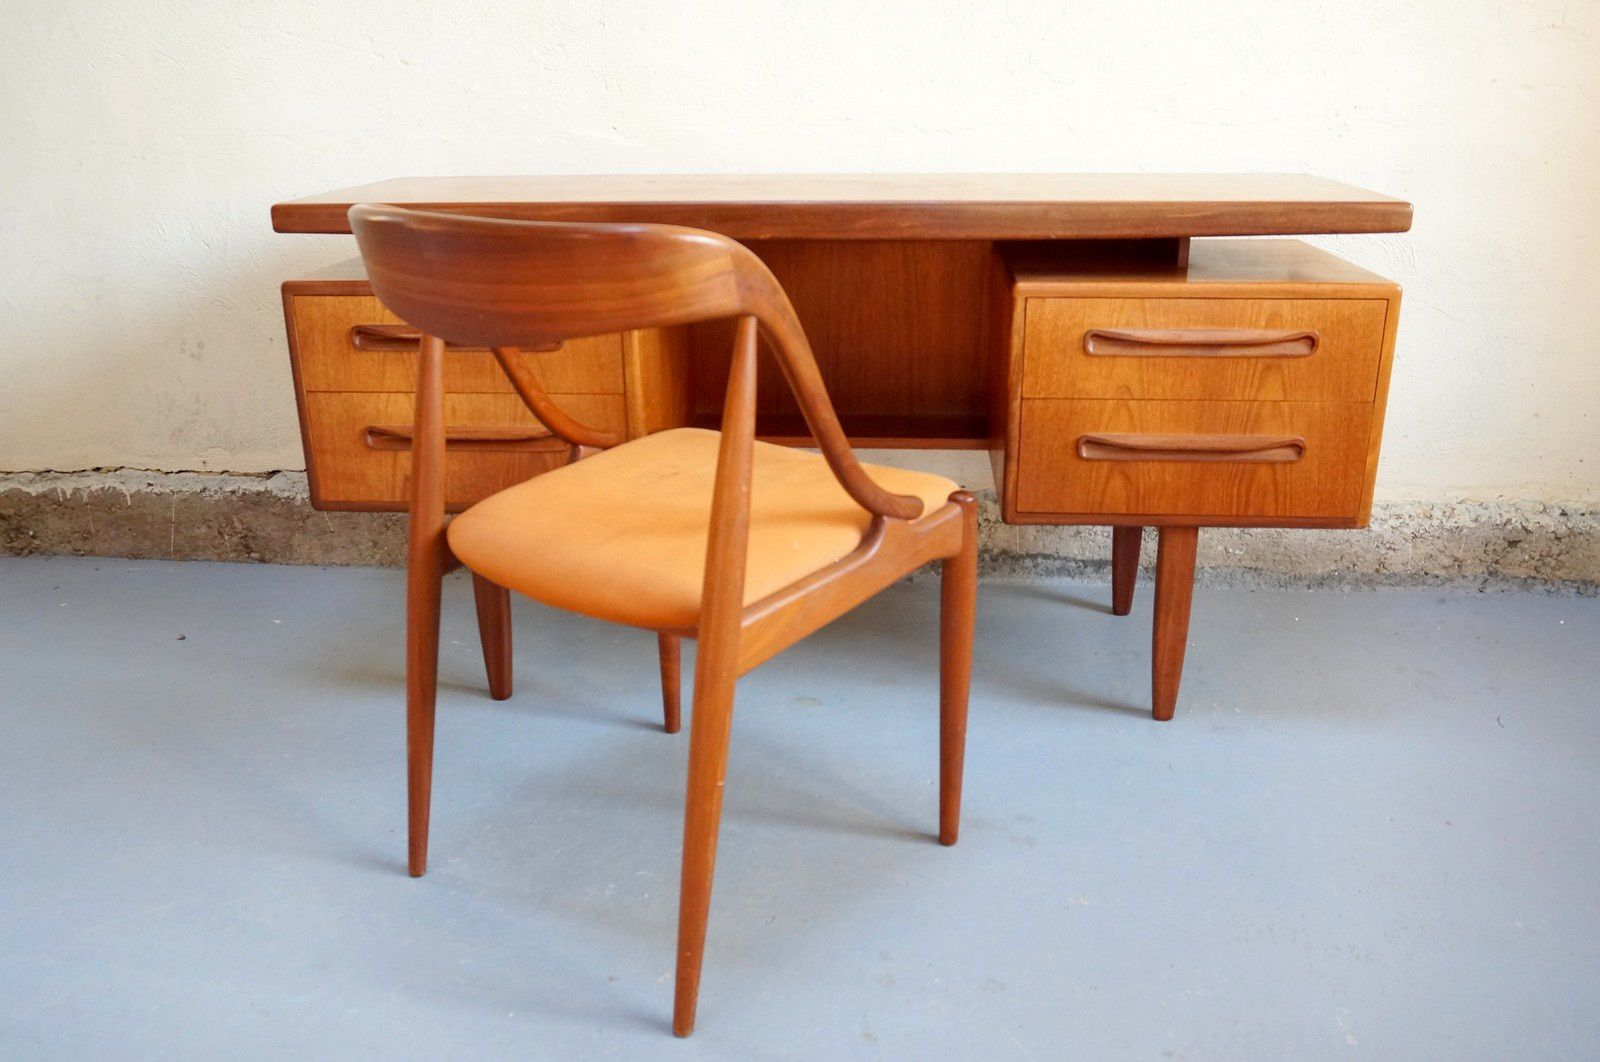 Vendu bureau scandinave g plan design ann es 60 vintage for Architecture annees 60